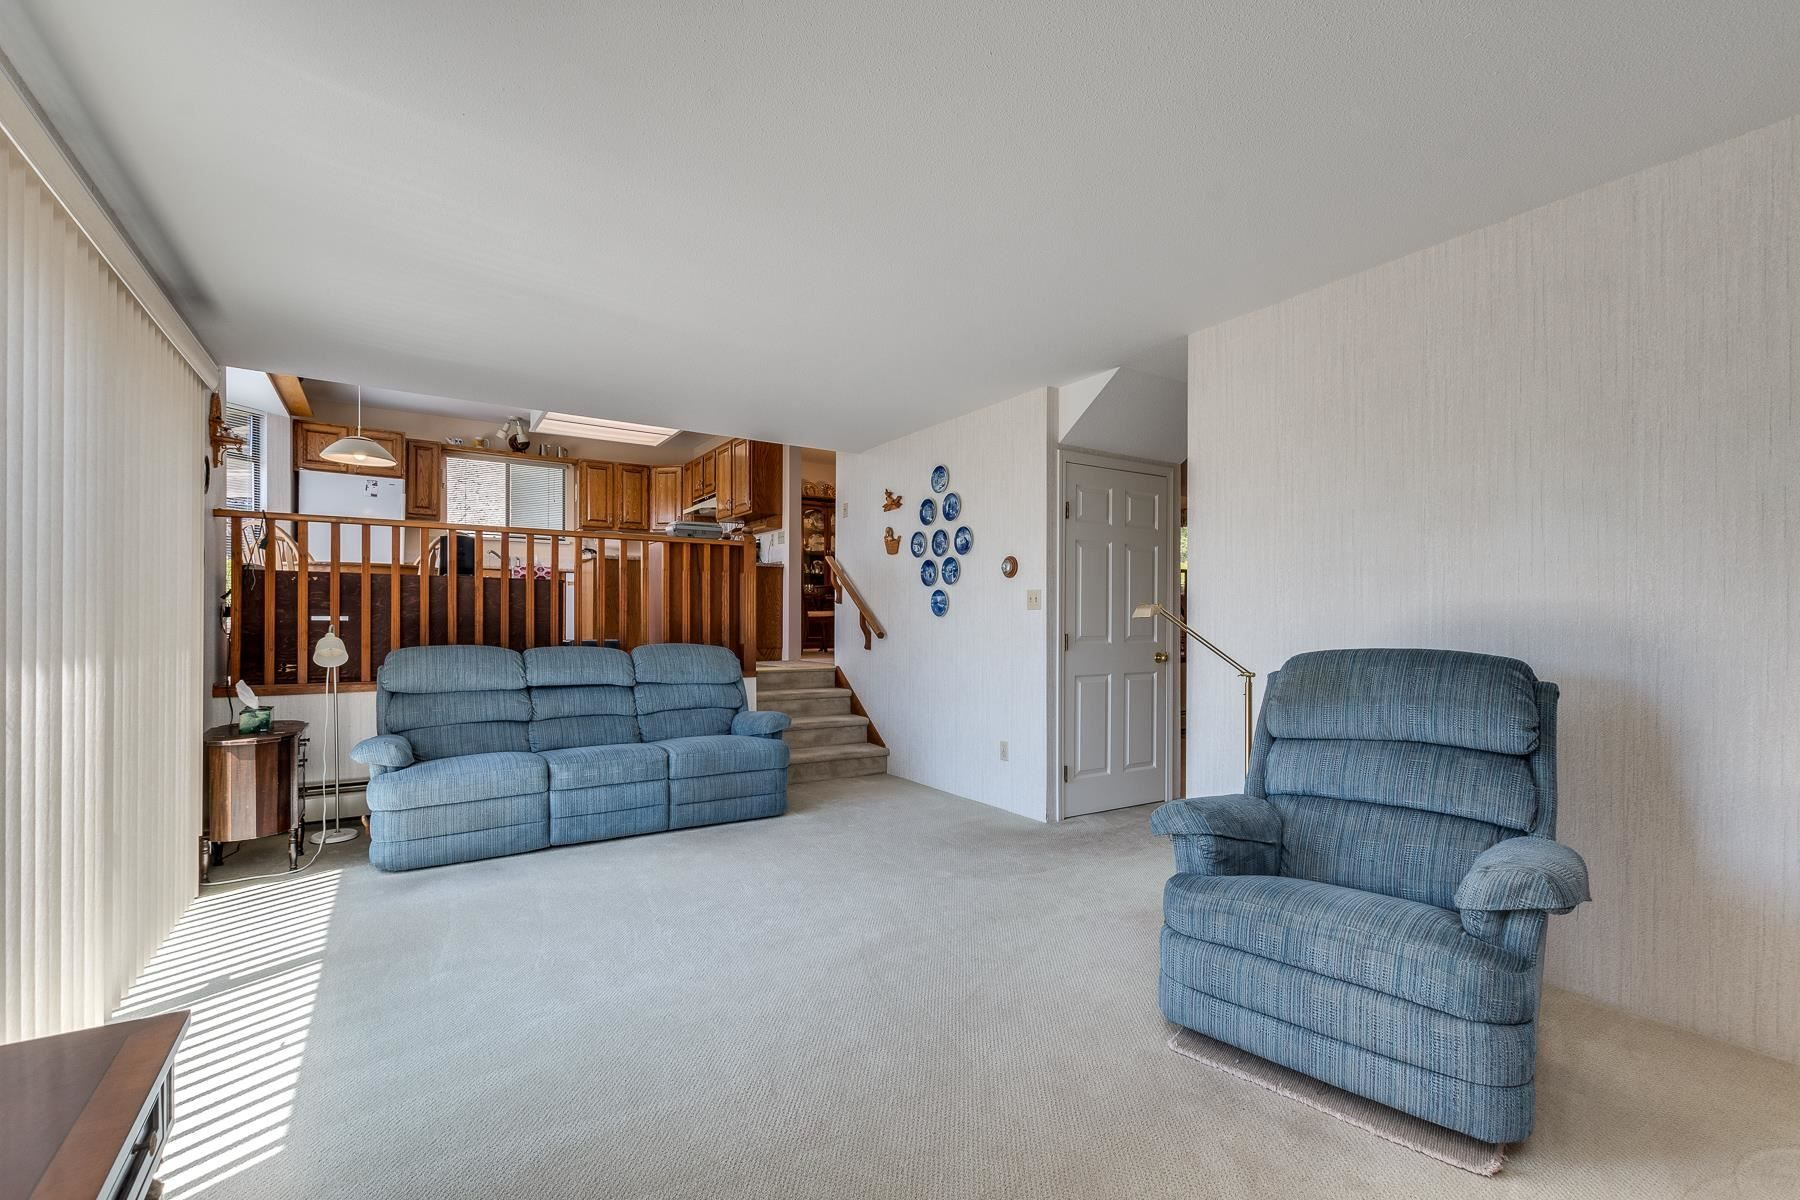 """Photo 16: Photos: 378 BALFOUR Drive in Coquitlam: Coquitlam East House for sale in """"DARTMOOR HEIGHTS"""" : MLS®# R2600428"""